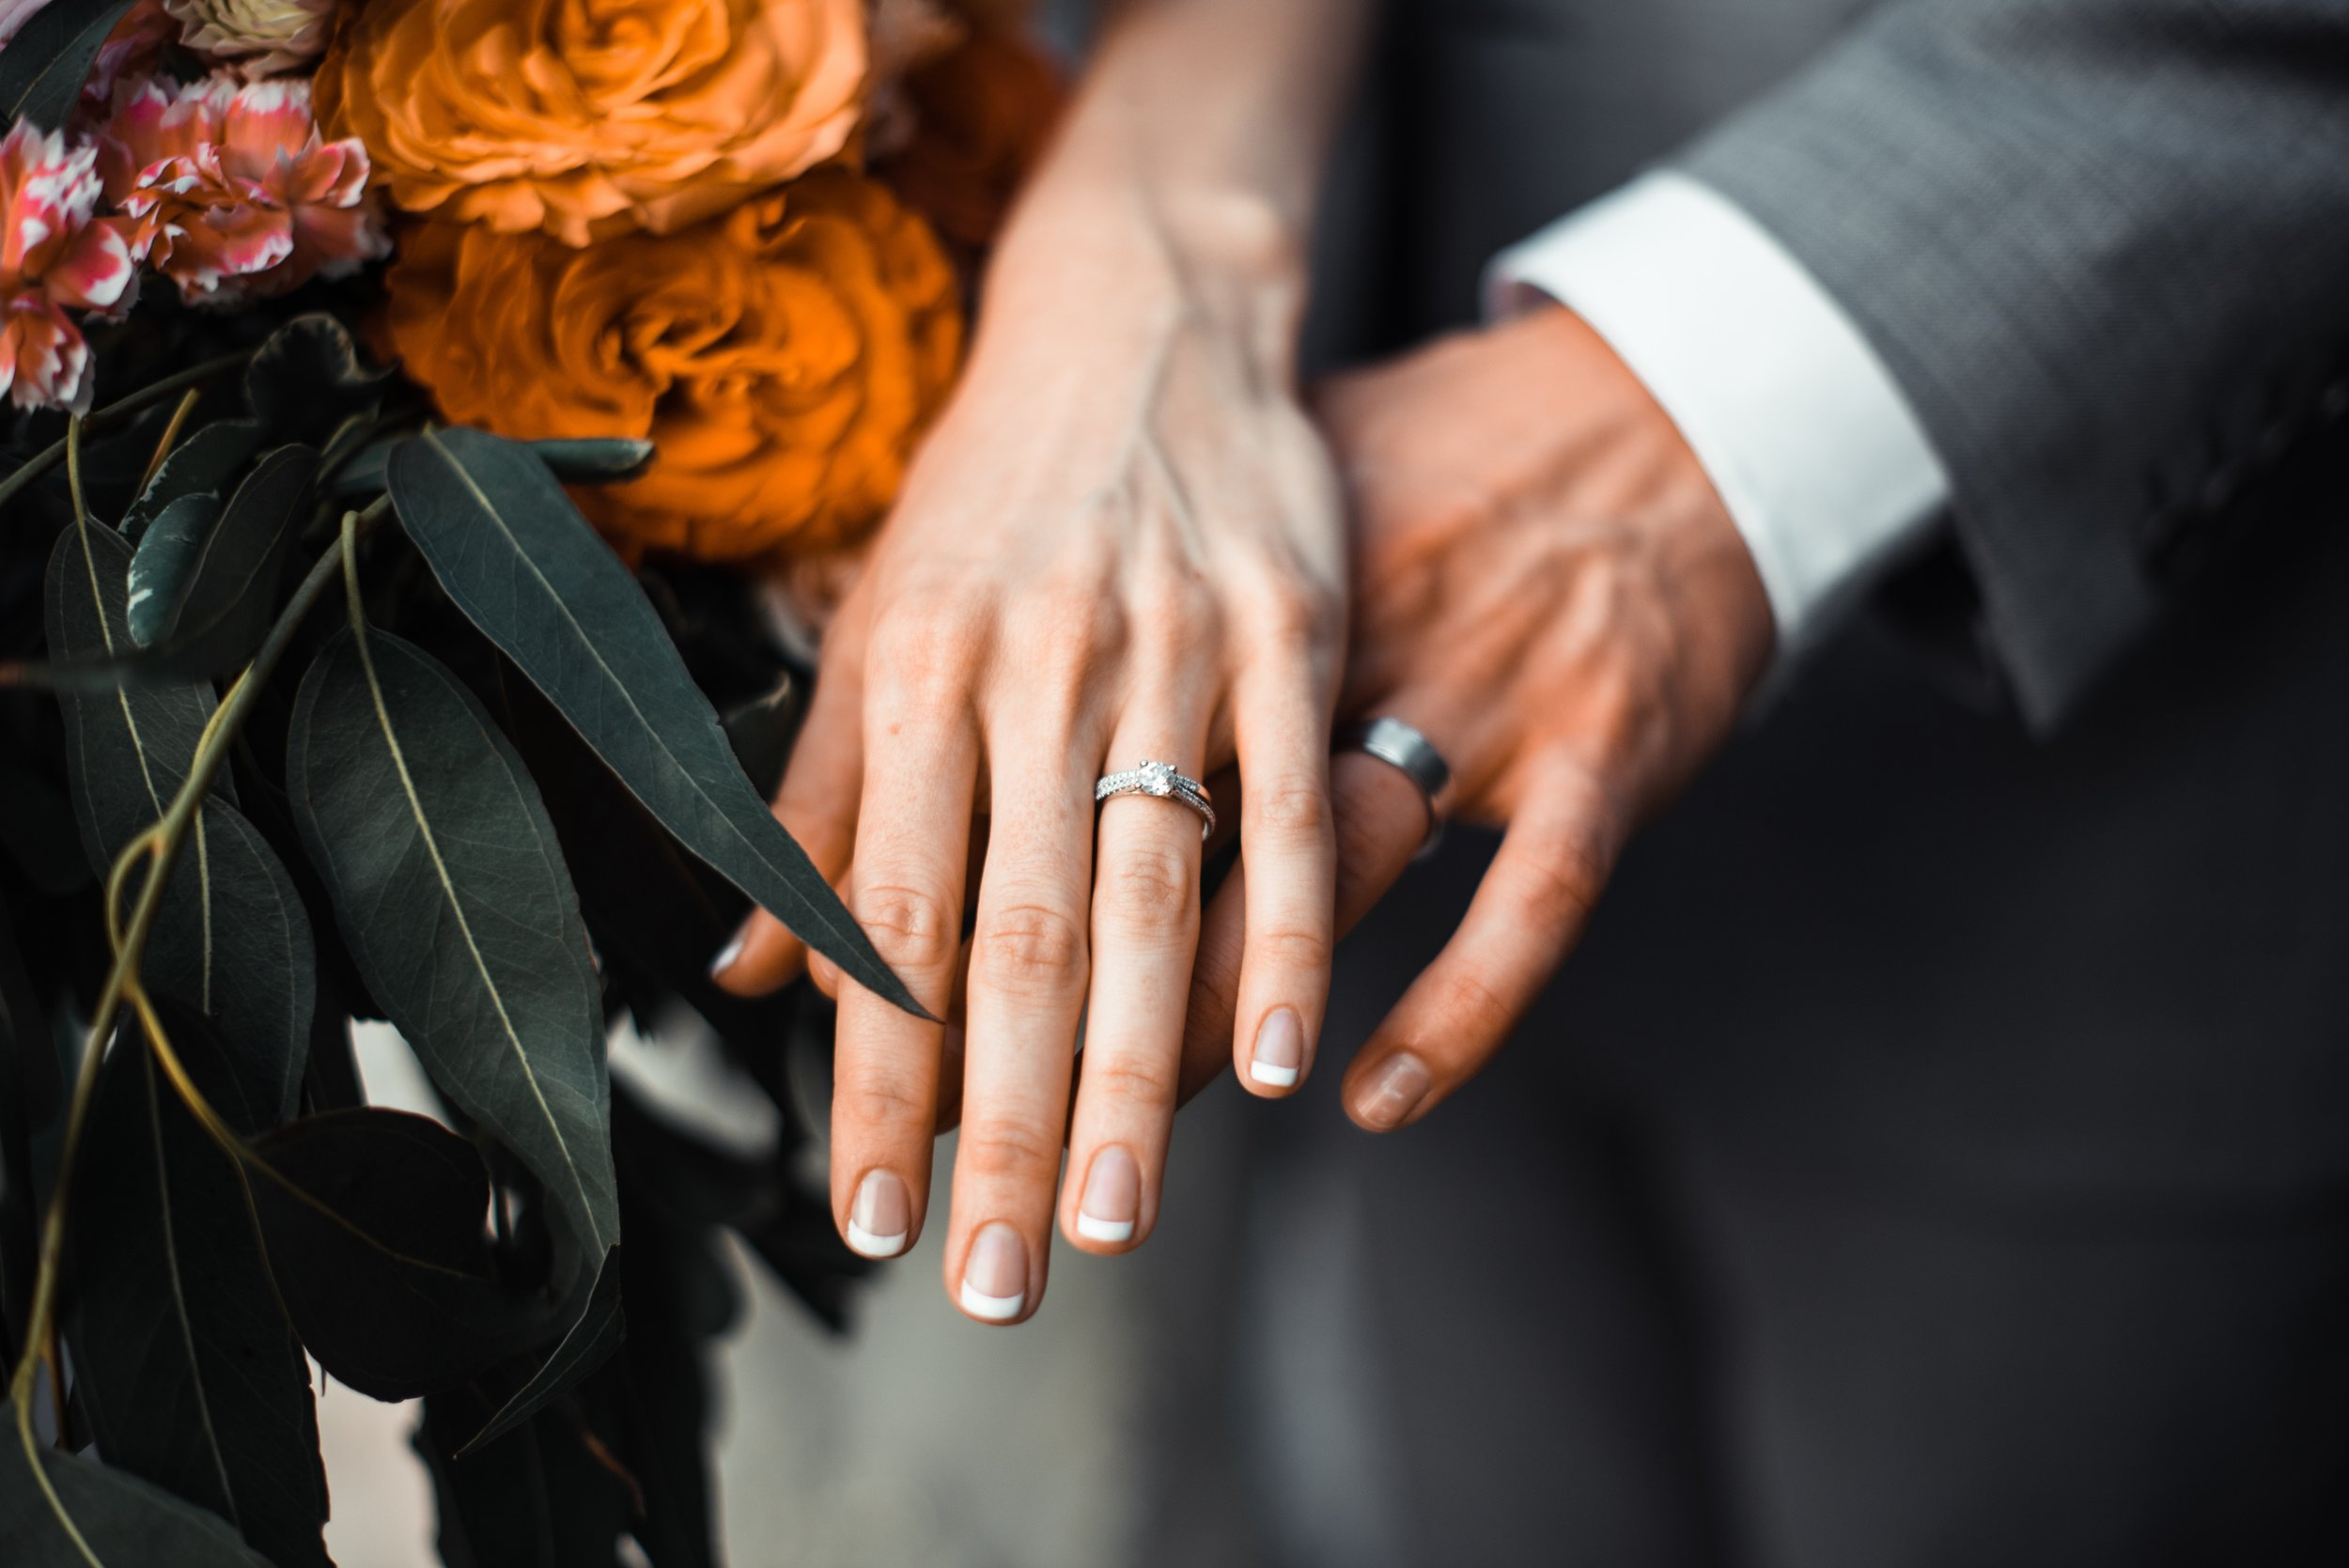 Rules for your wedding ring